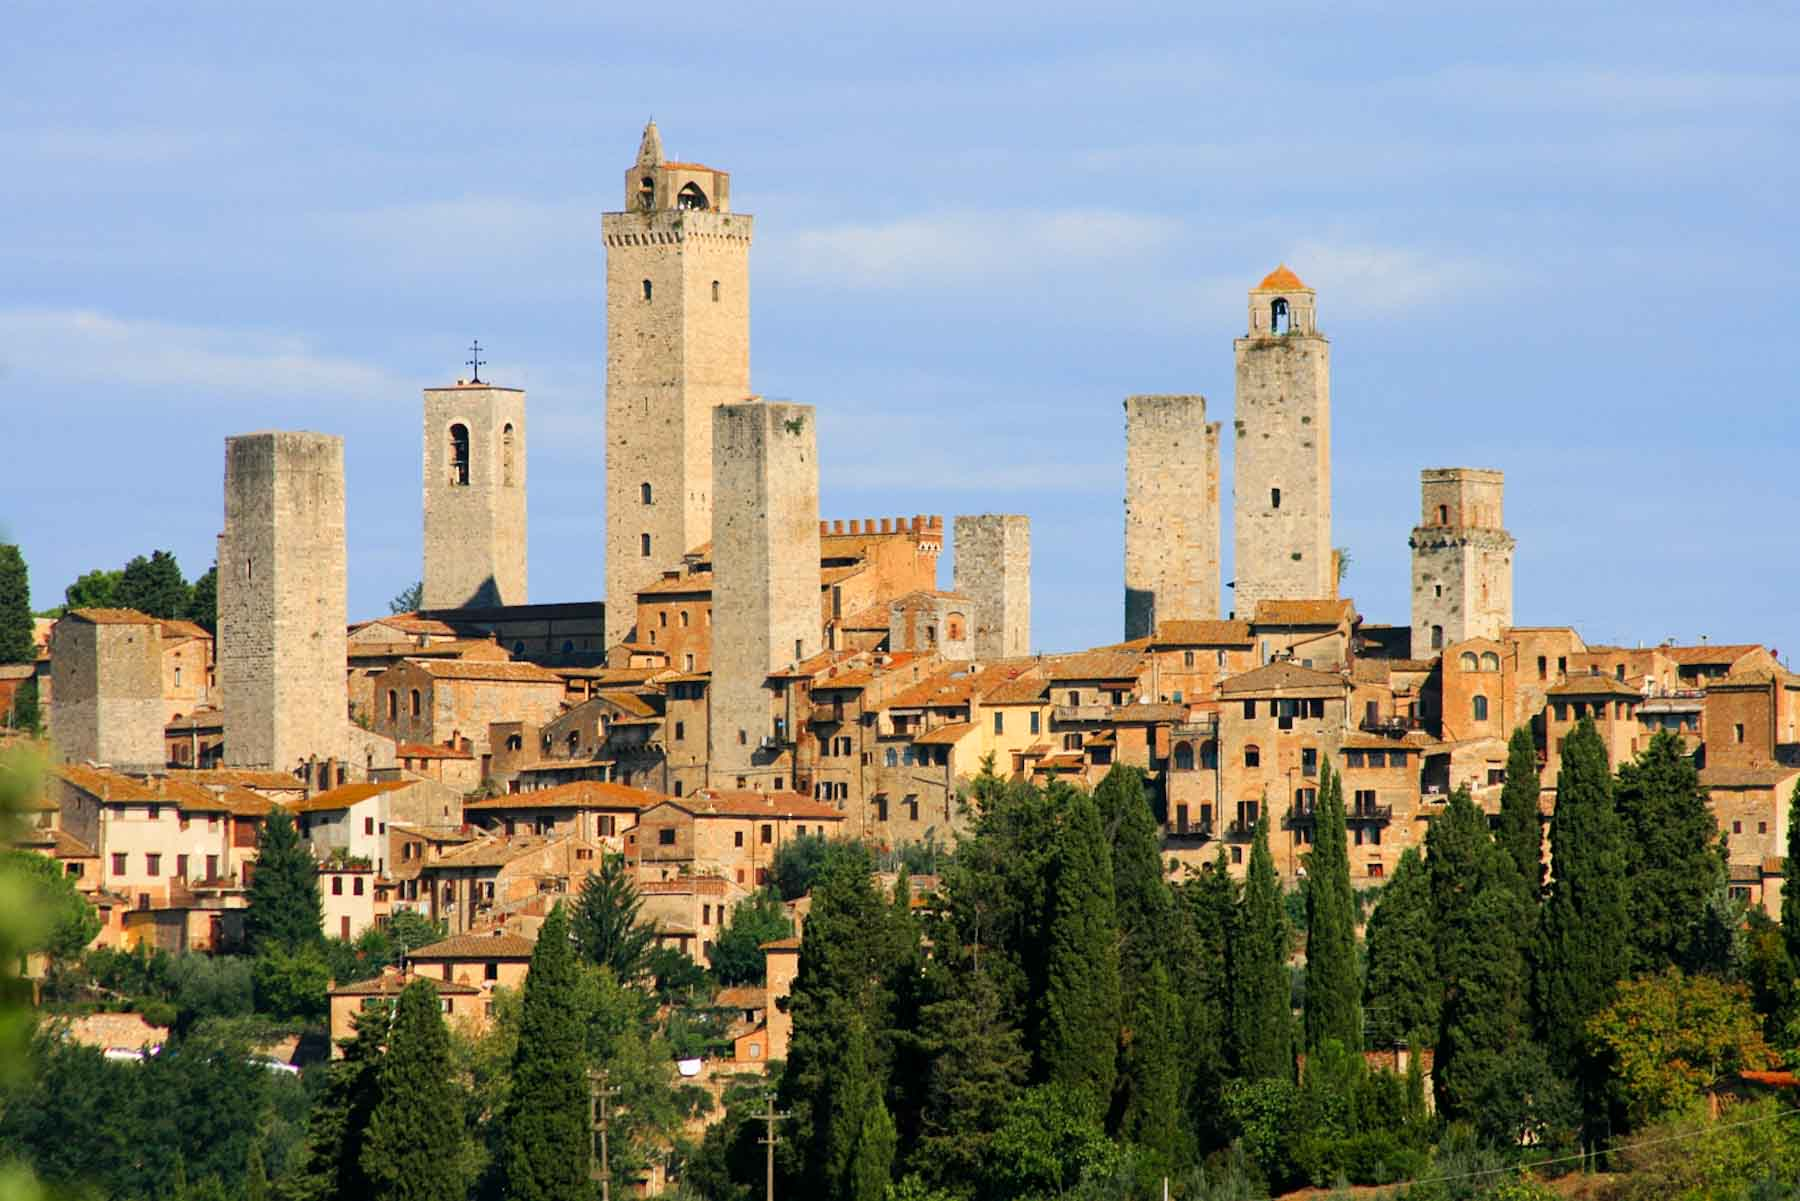 San Gimignano 5 bell towers - Things to do in Siena Tuscany